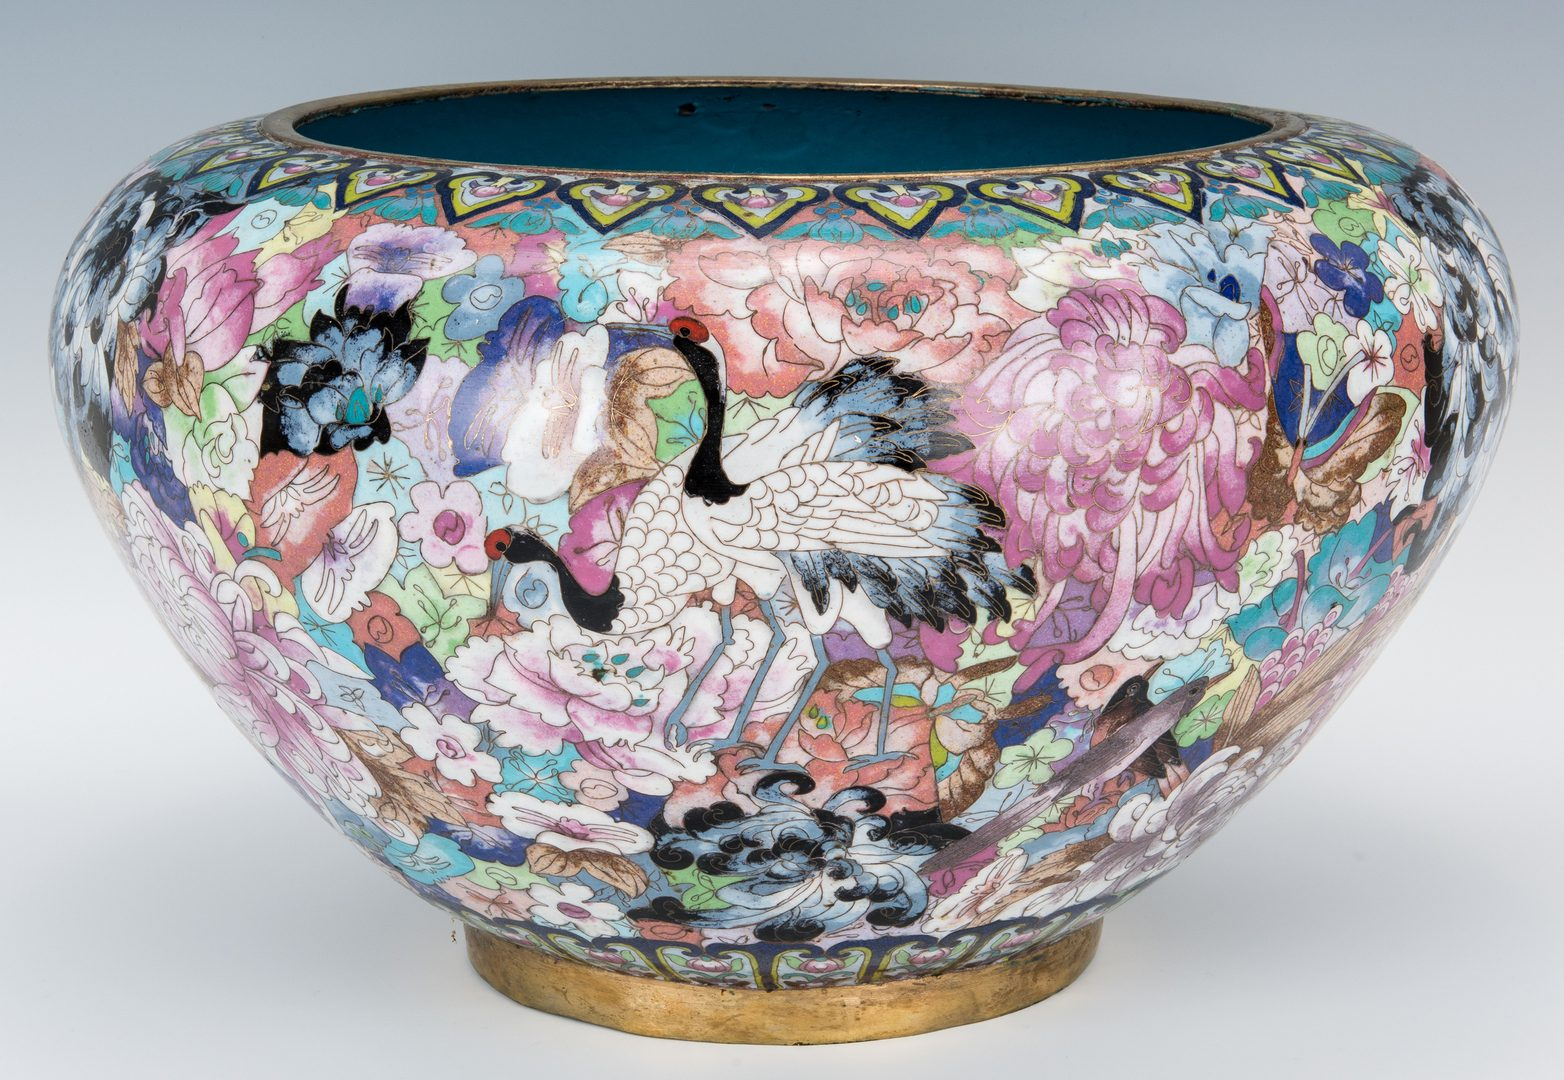 Lot 218: Large Asian Cloisonne Bowl or Planter